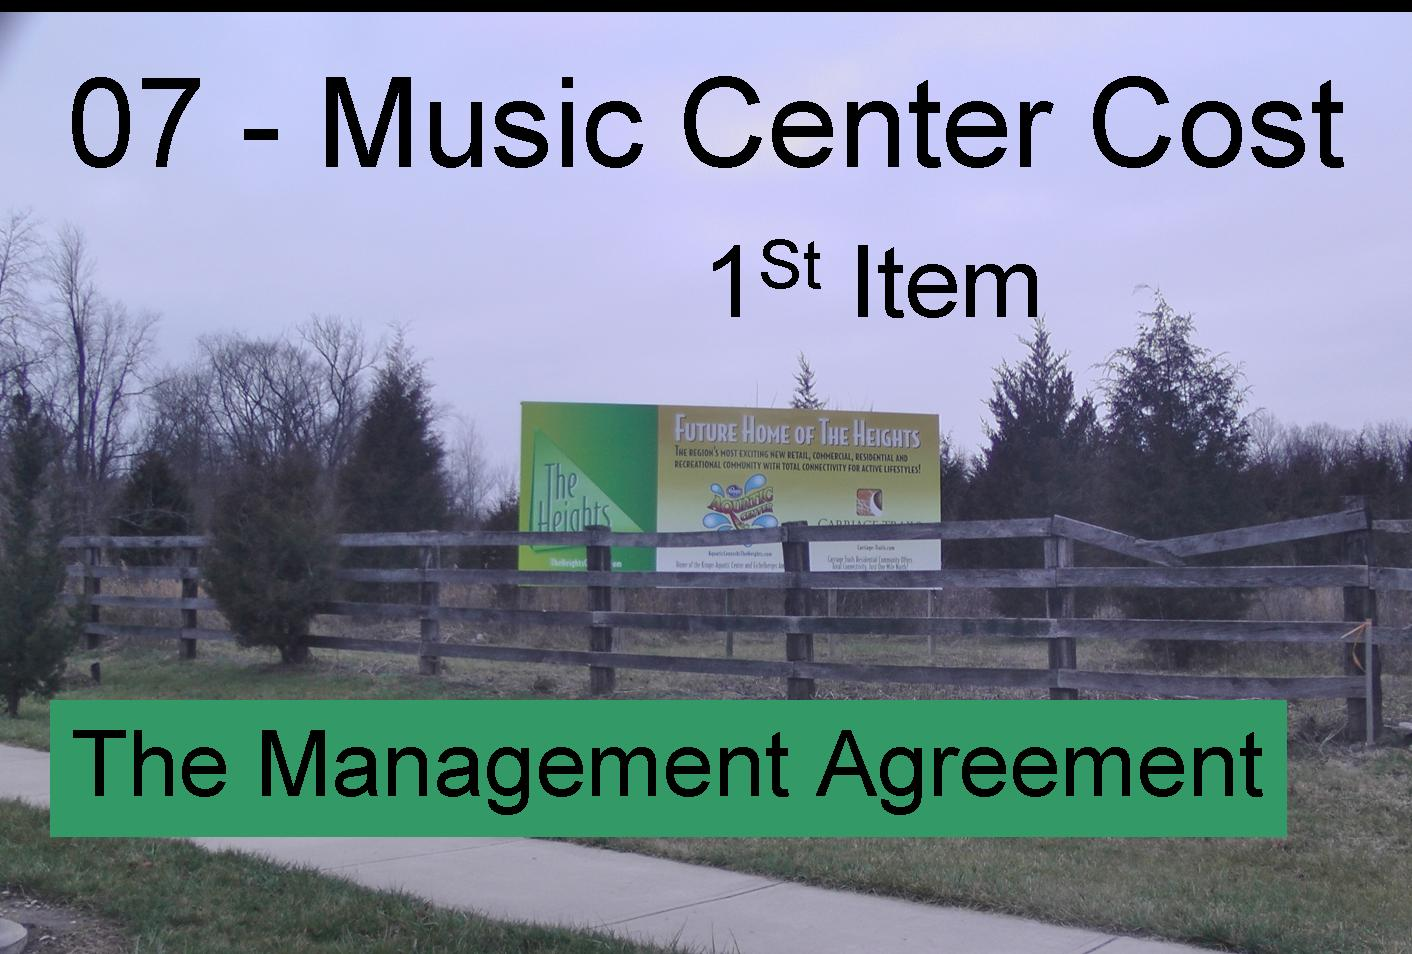 07 - Music Center Costs - Part 1 The Management Agreement